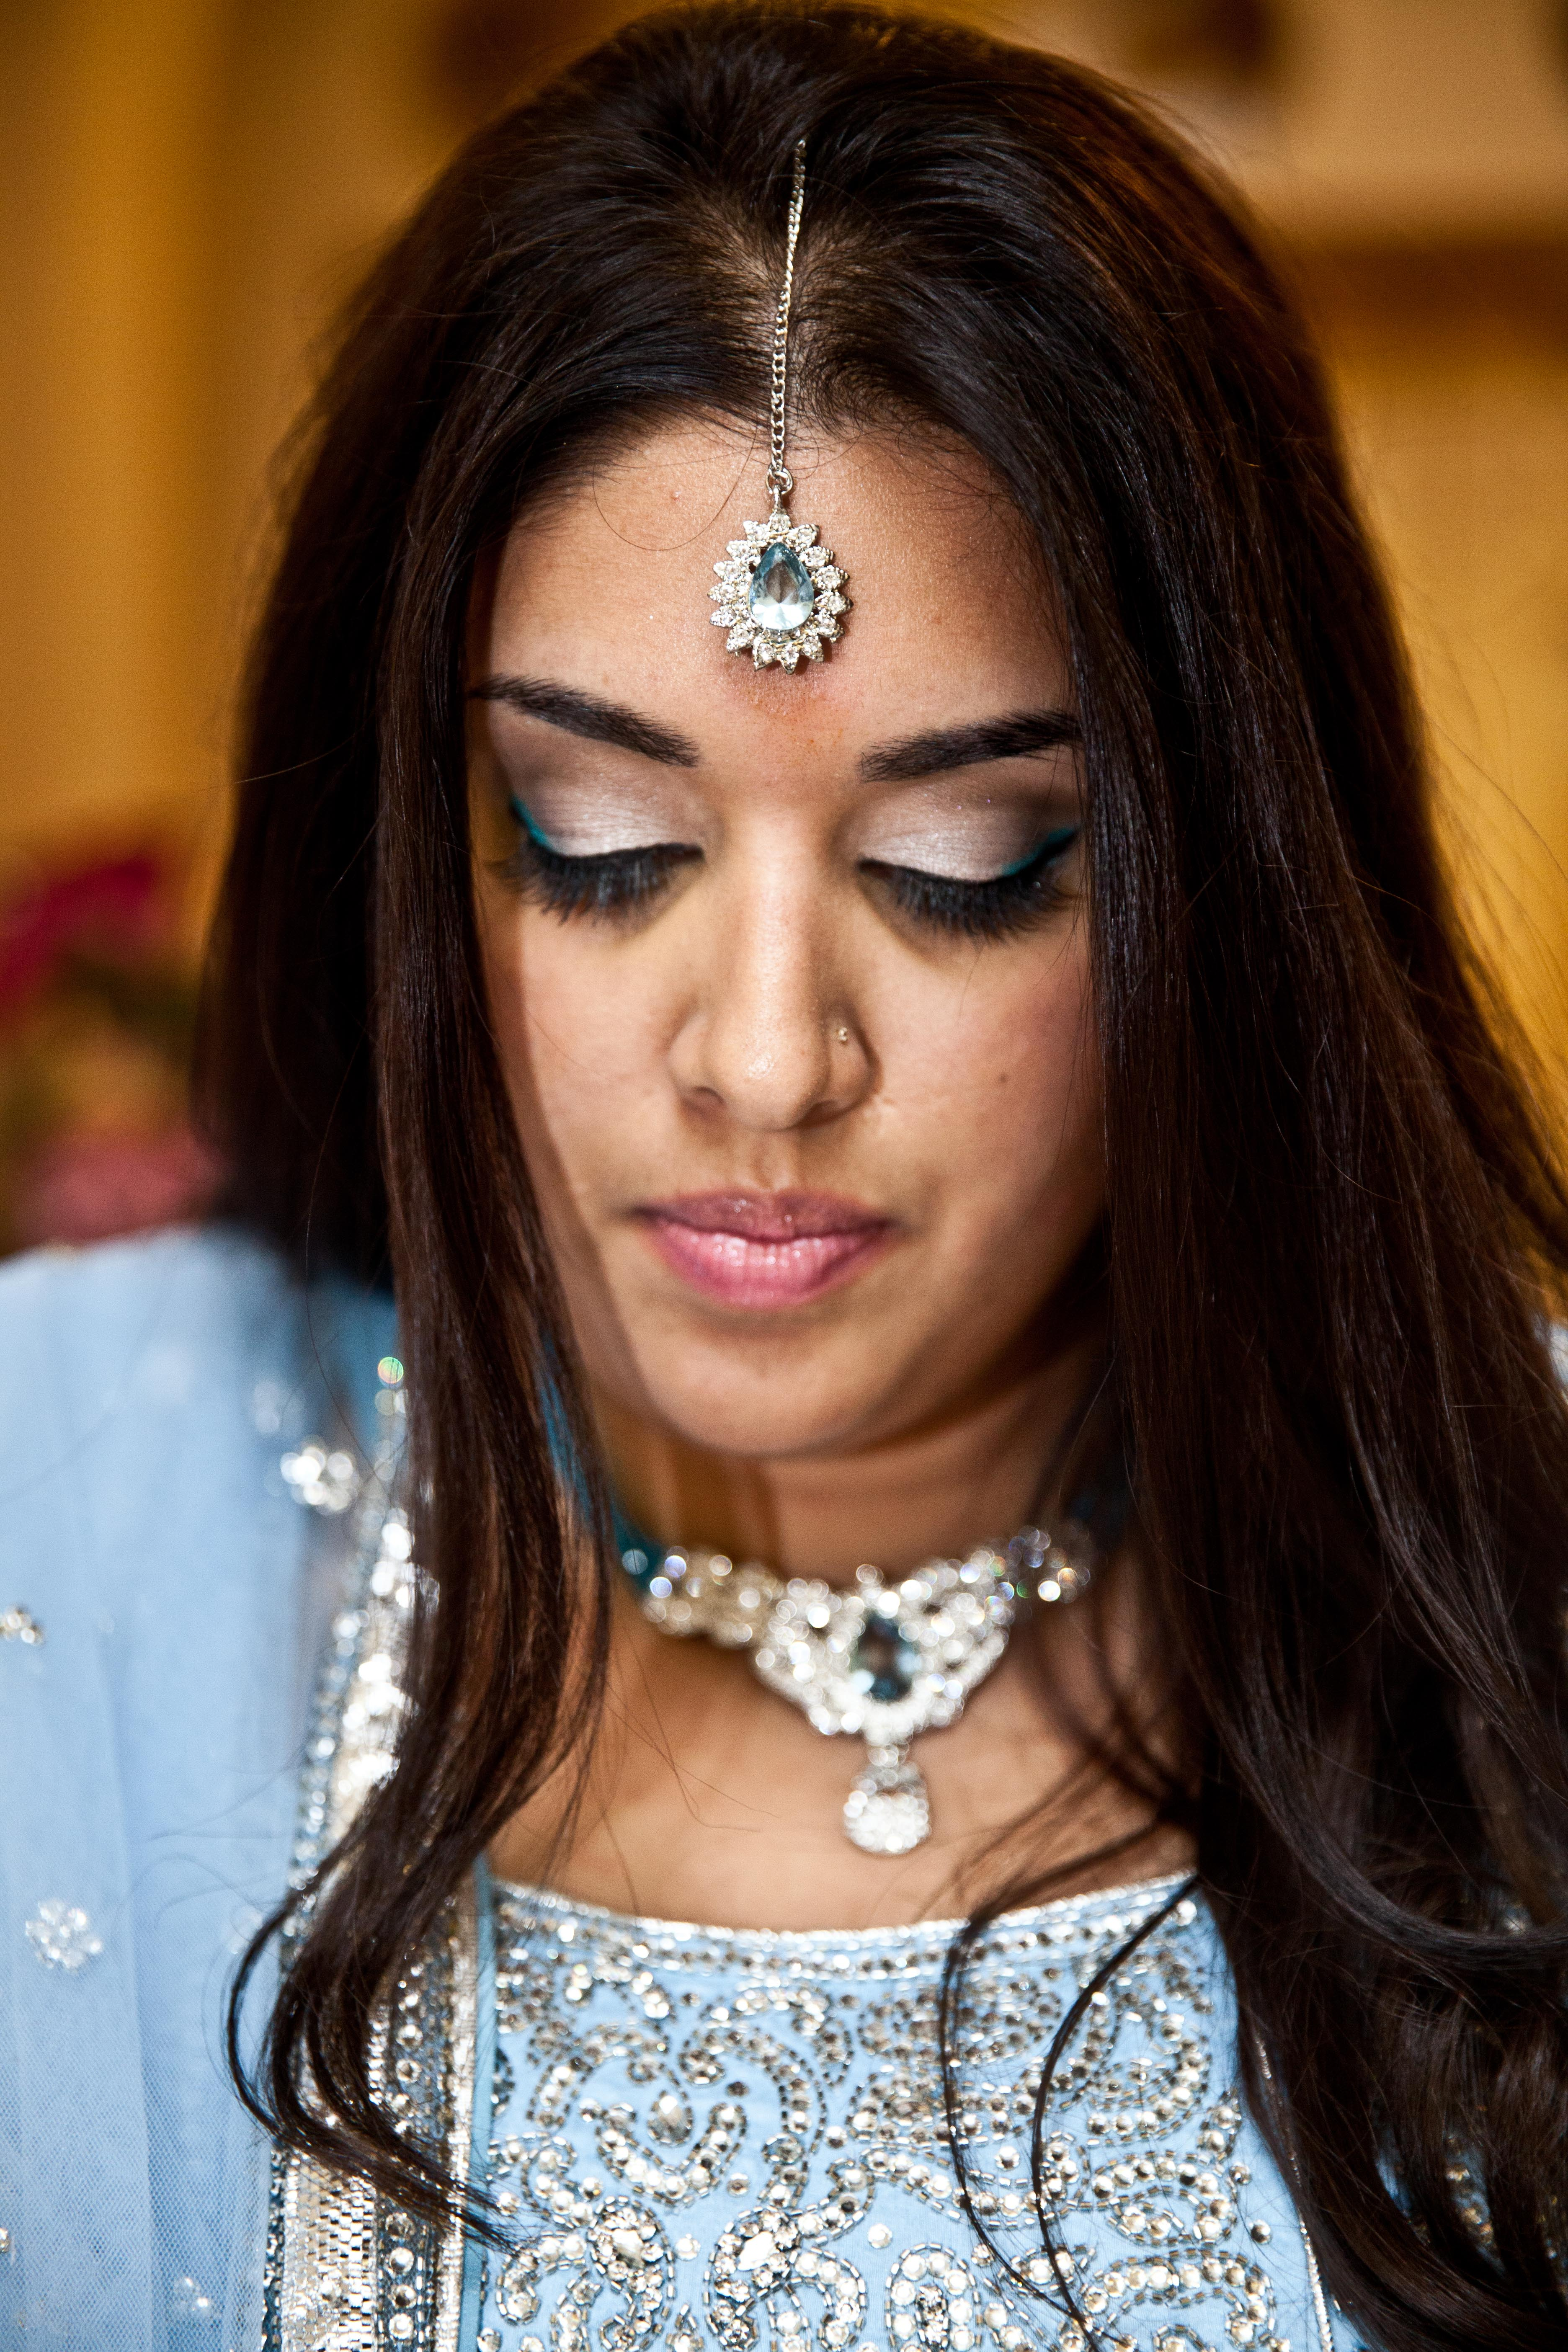 Muslim bride wearing a blue sari and traditional head piece at Toronto South Asian wedding